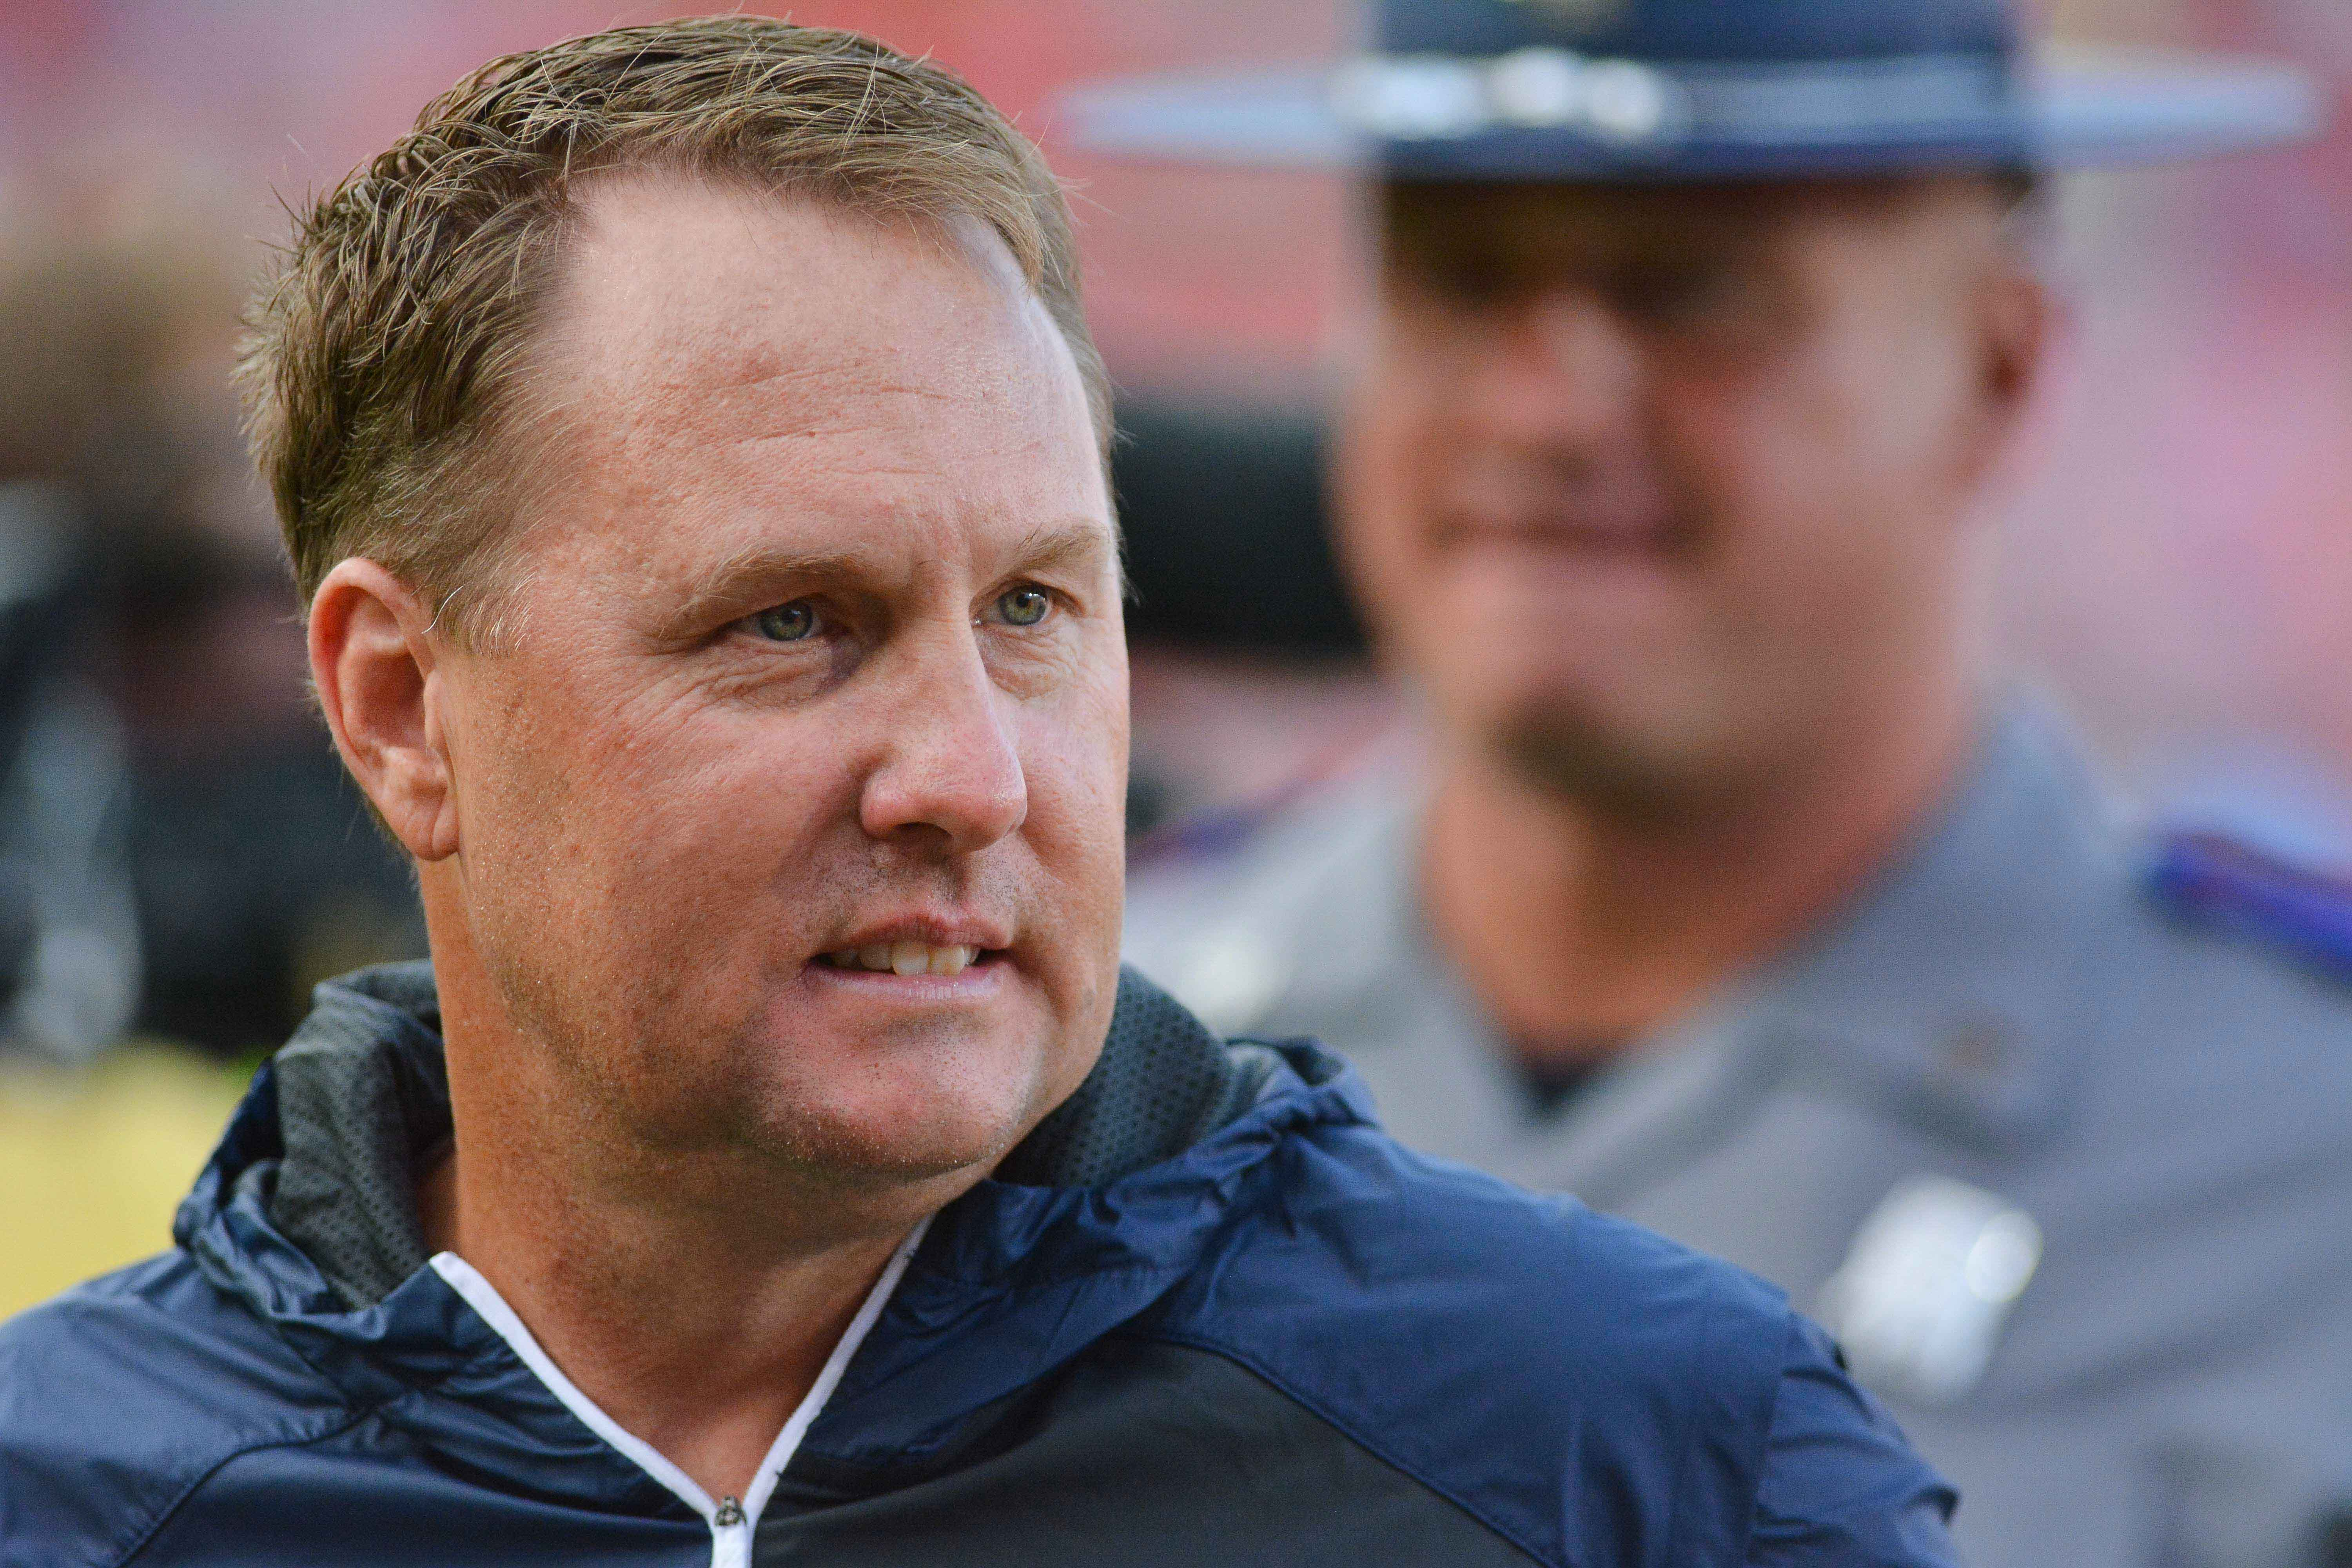 Hugh Freeze speaks: 'God is good, even in difficult times'